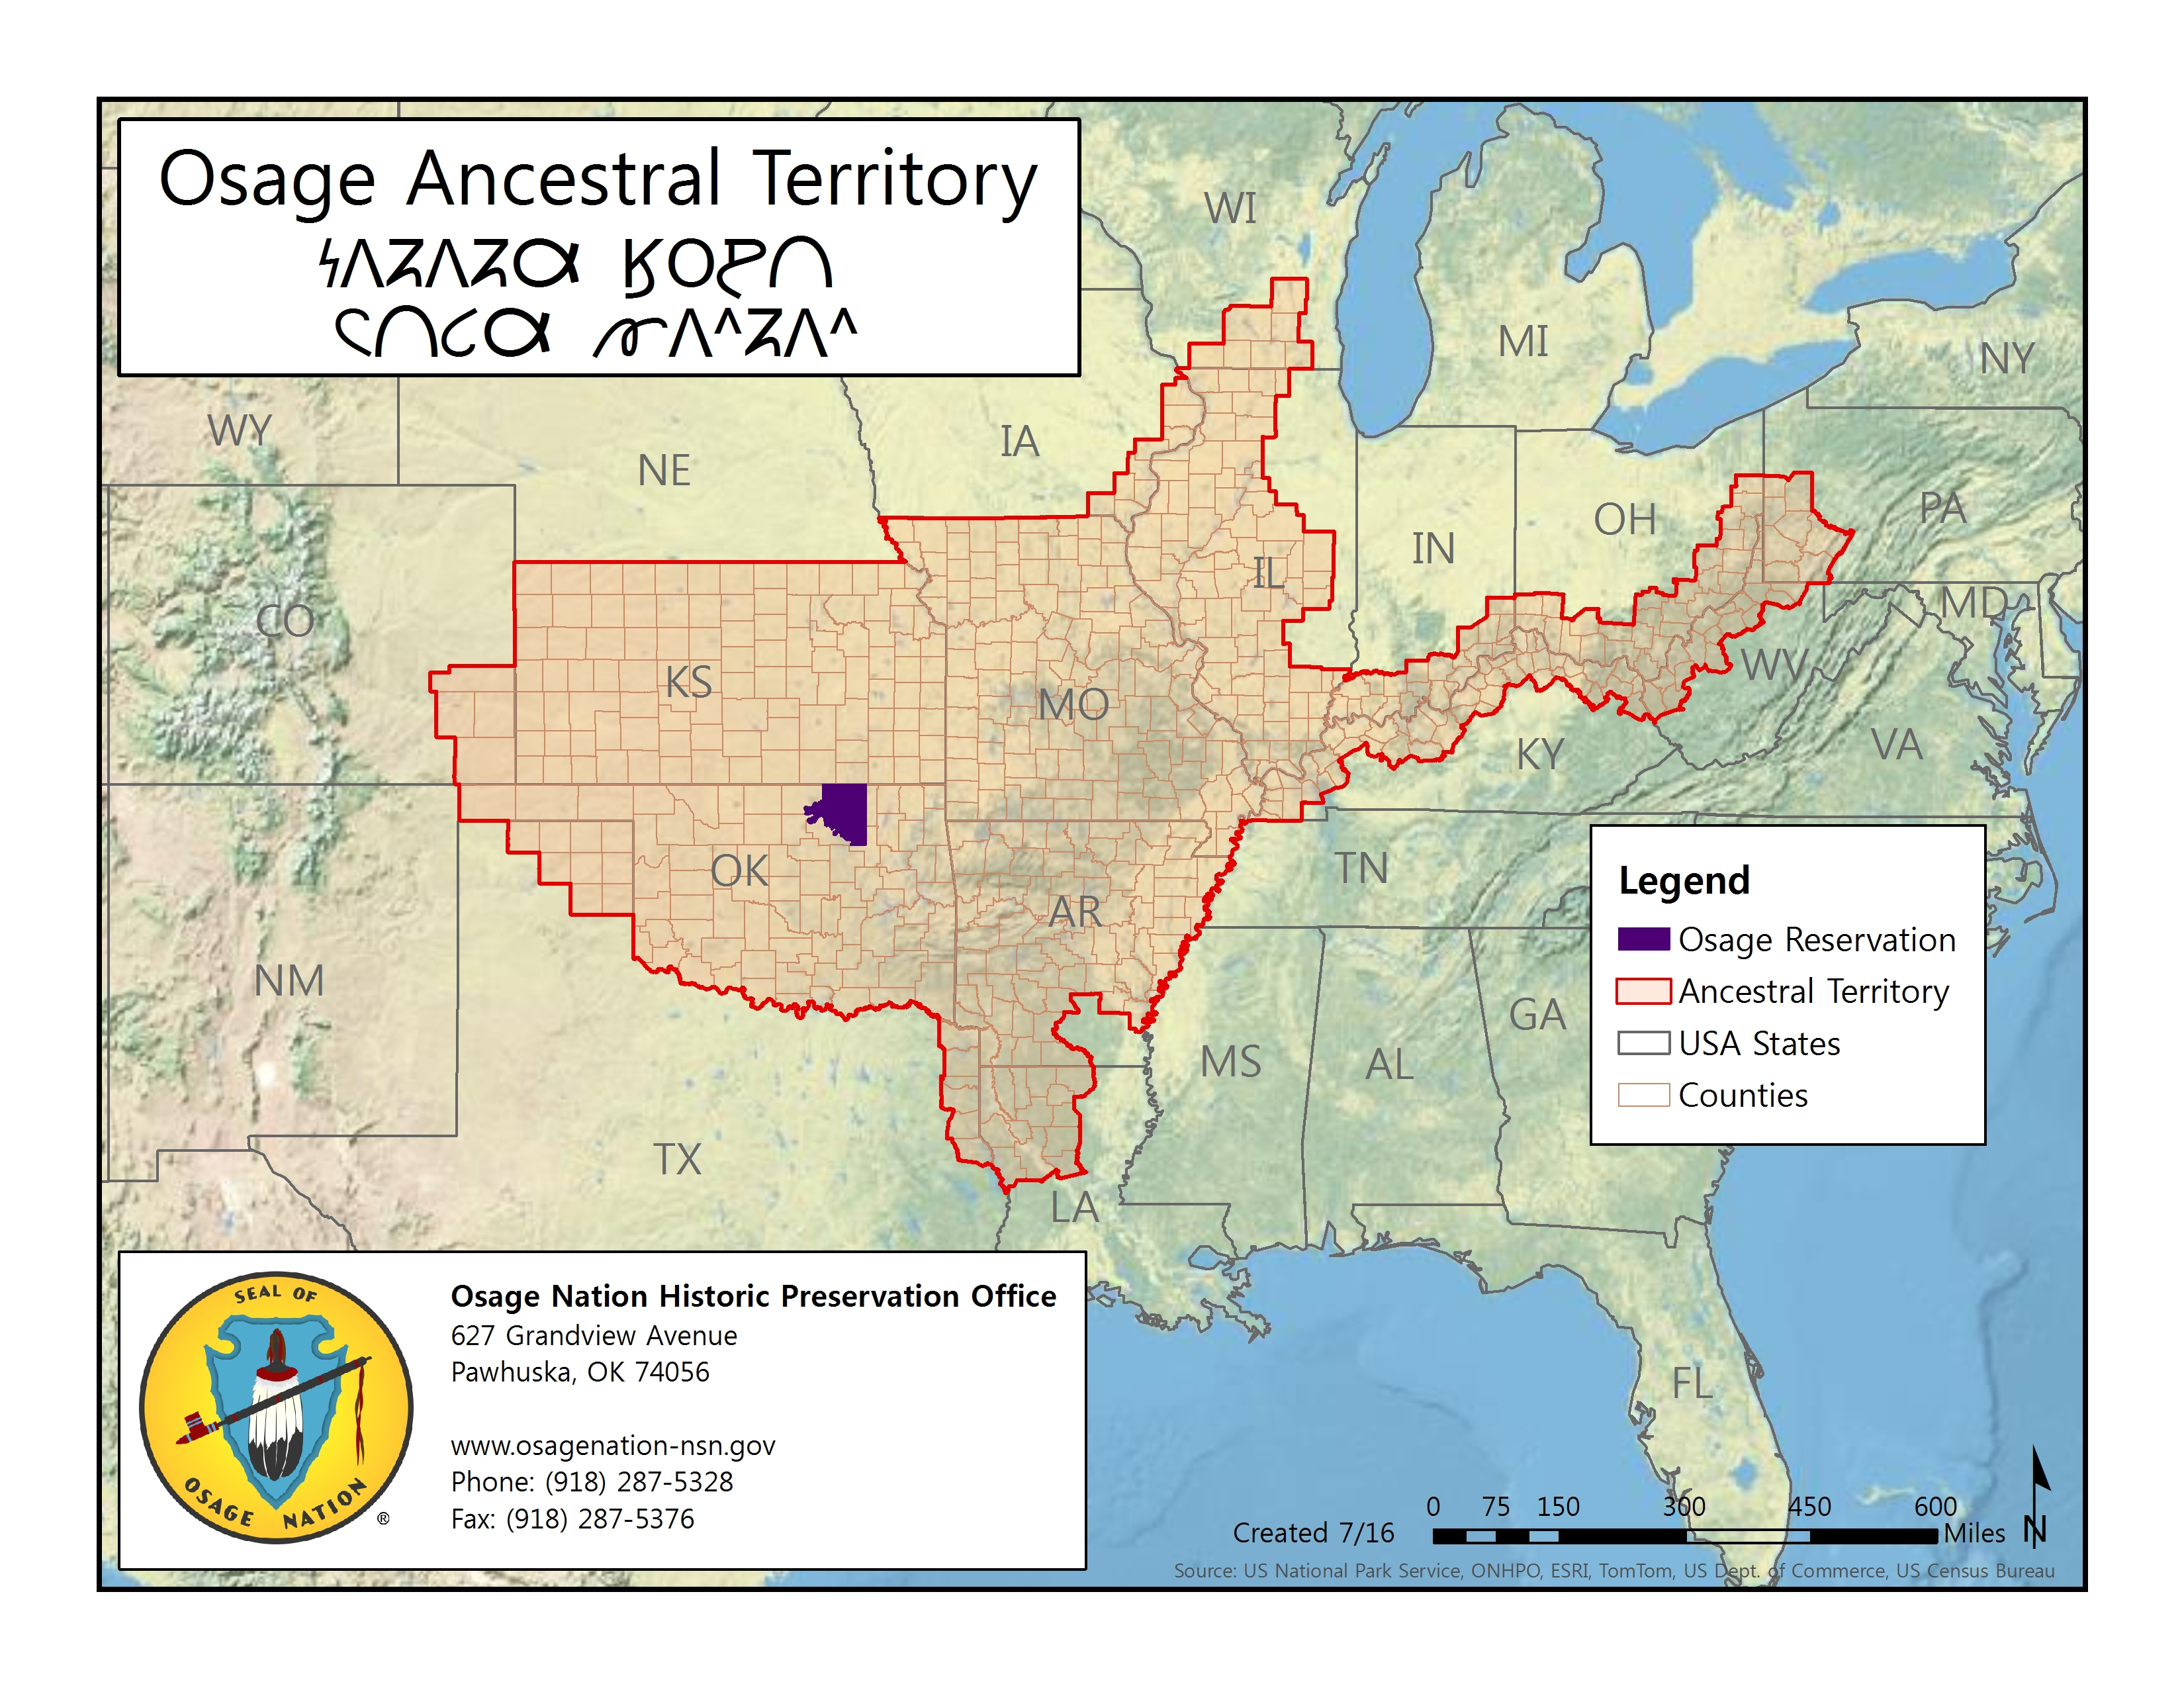 Missouri State Historic Preservation Office holding Osage remains despite Natl. NAGPRA Committee finding